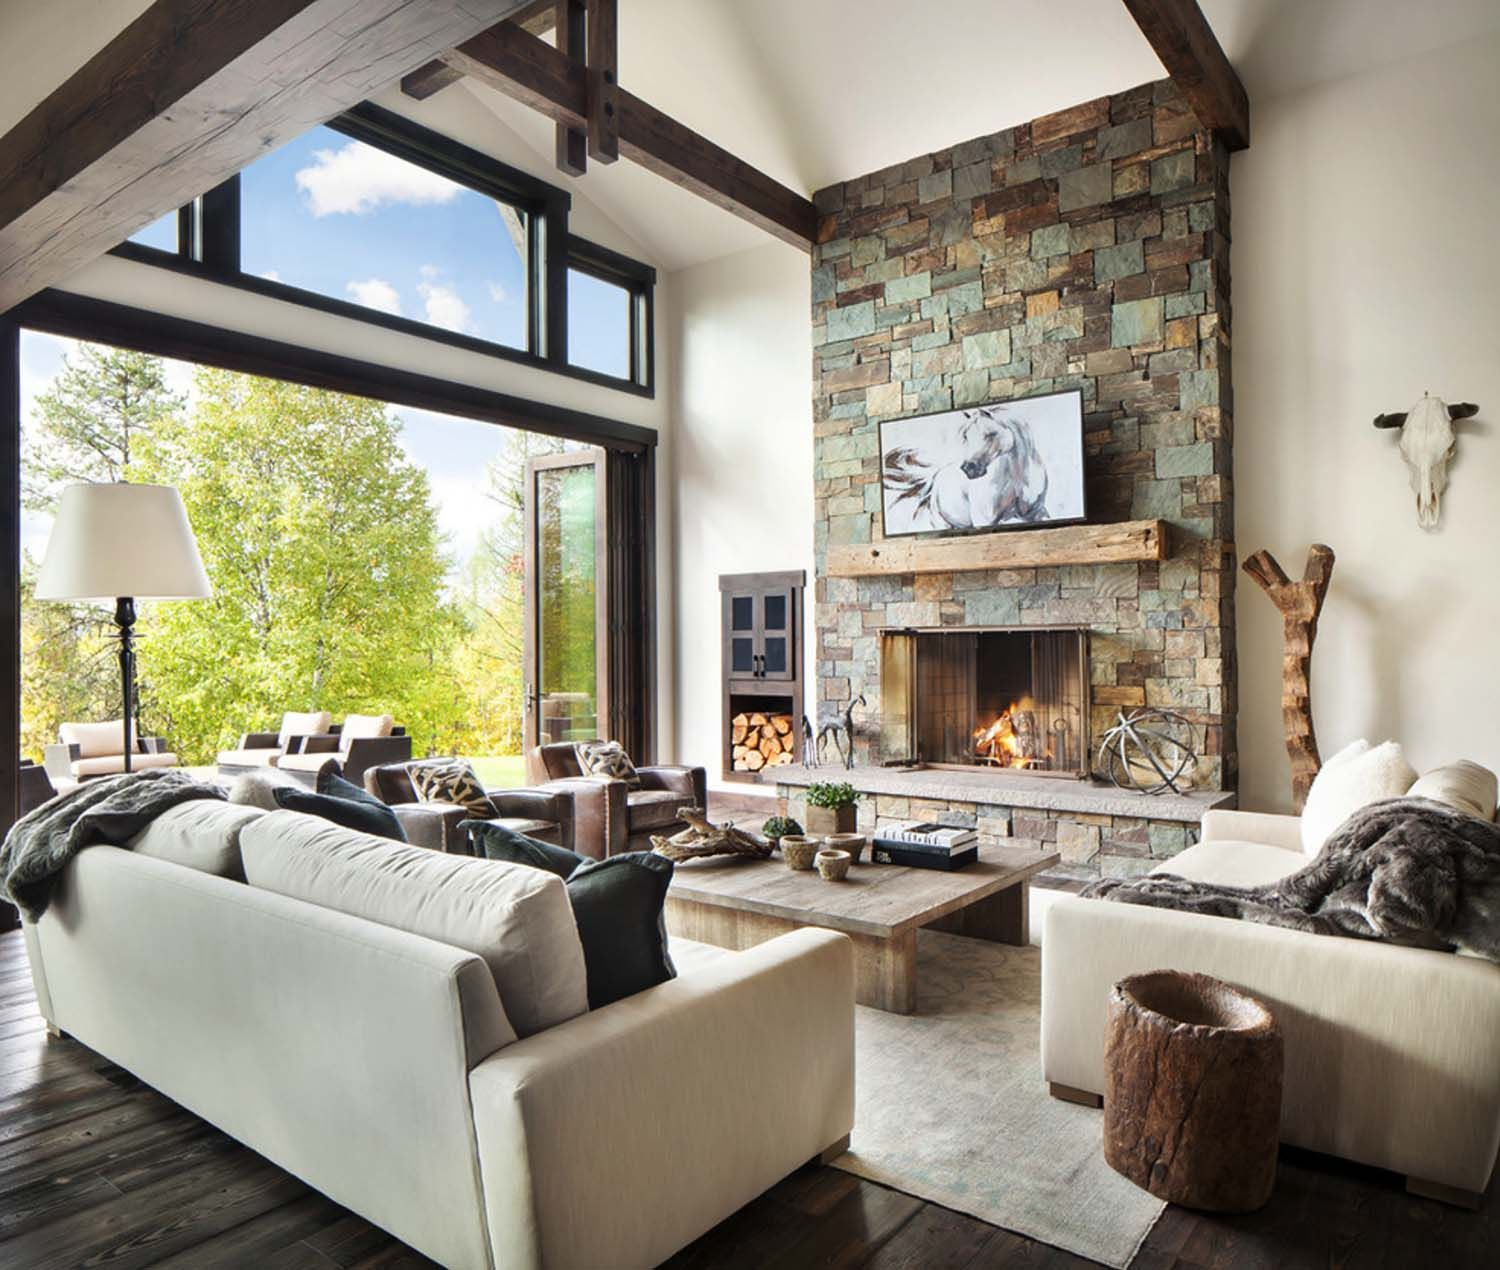 Modern Contemporary Home Interior Design: Rustic-modern Dwelling Nestled In The Northern Rocky